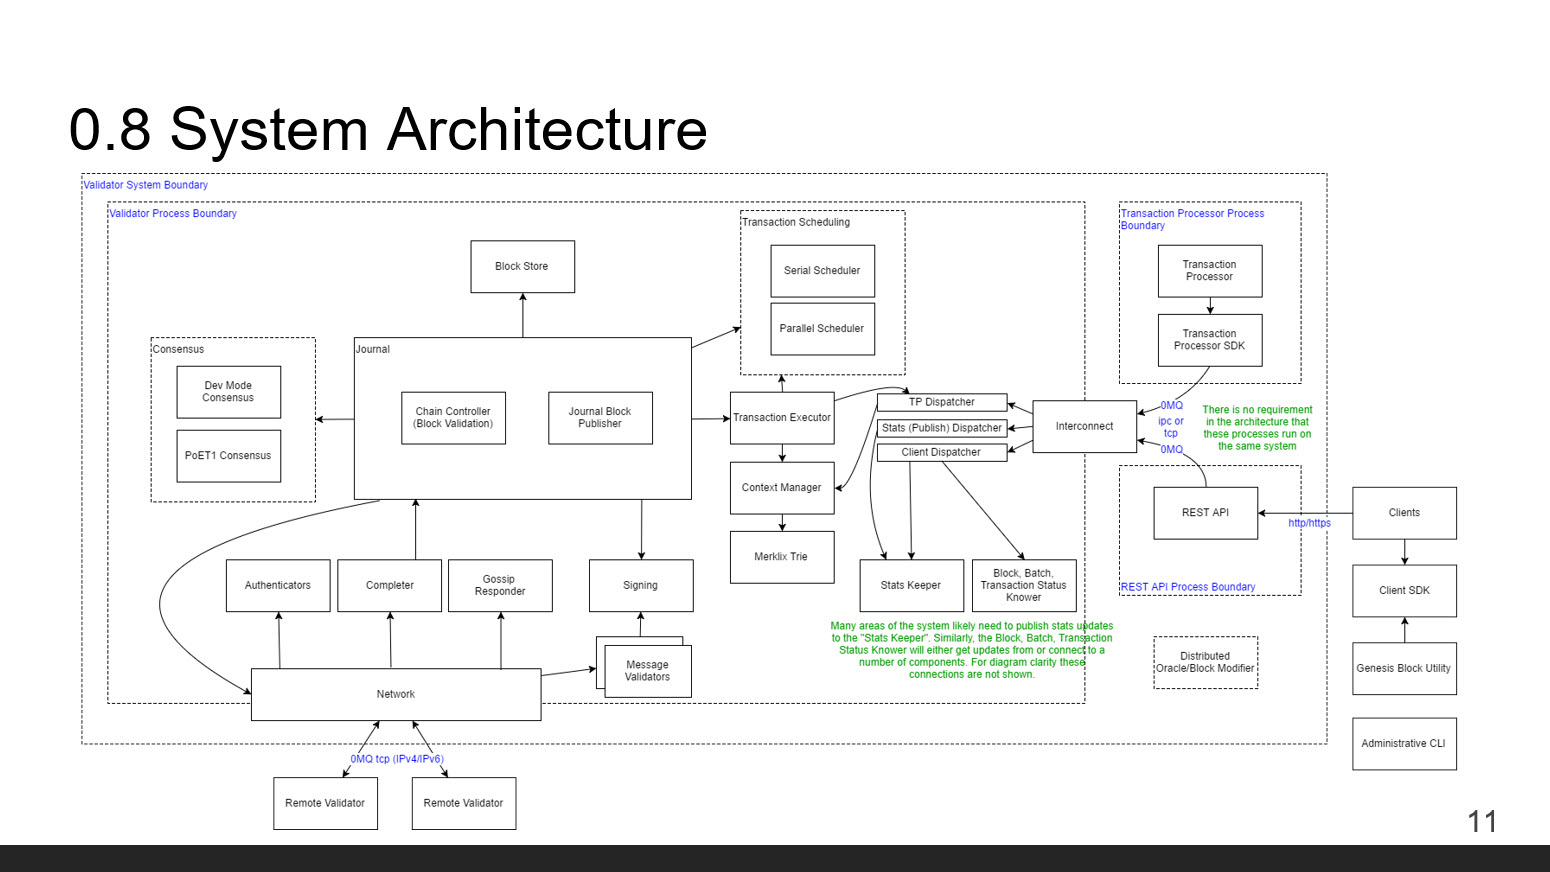 Hyperledger Sawtooth Lake Intel Dan Middleton Blockchain System Architecture